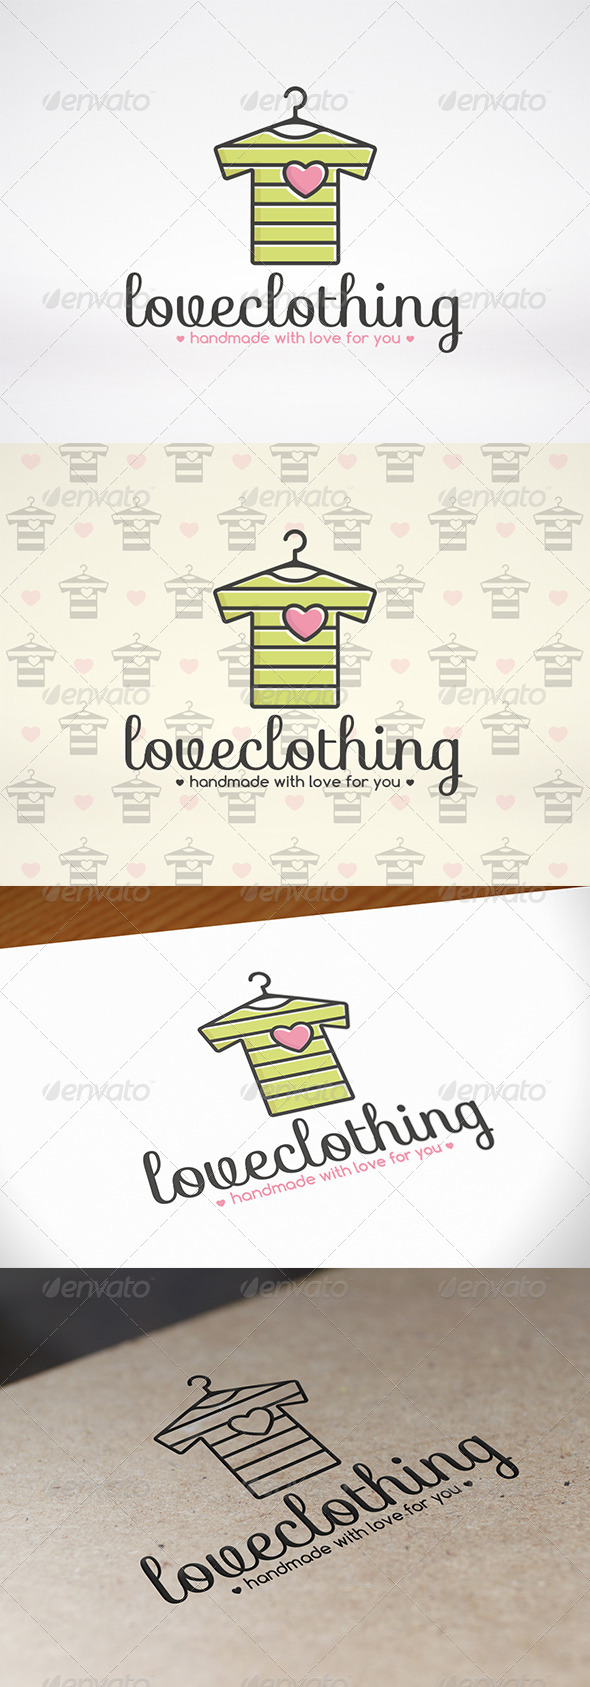 GraphicRiver Love Clothing Logo Template 8715501